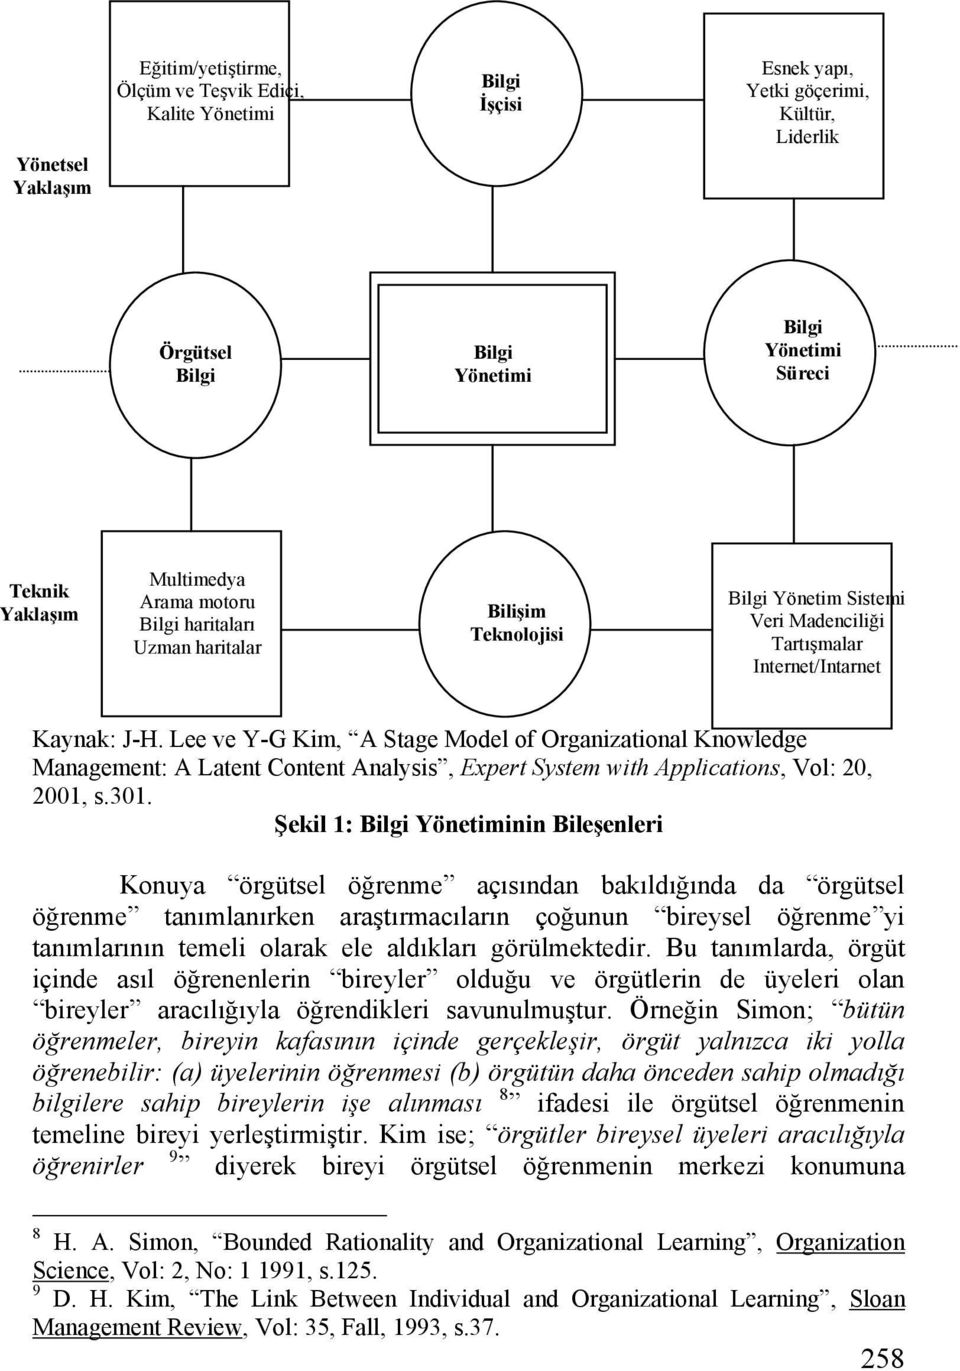 Lee ve Y-G Kim, A Stage Model of Organizational Knowledge Management: A Latent Content Analysis, Expert System with Applications, Vol: 20, 2001, s.301.